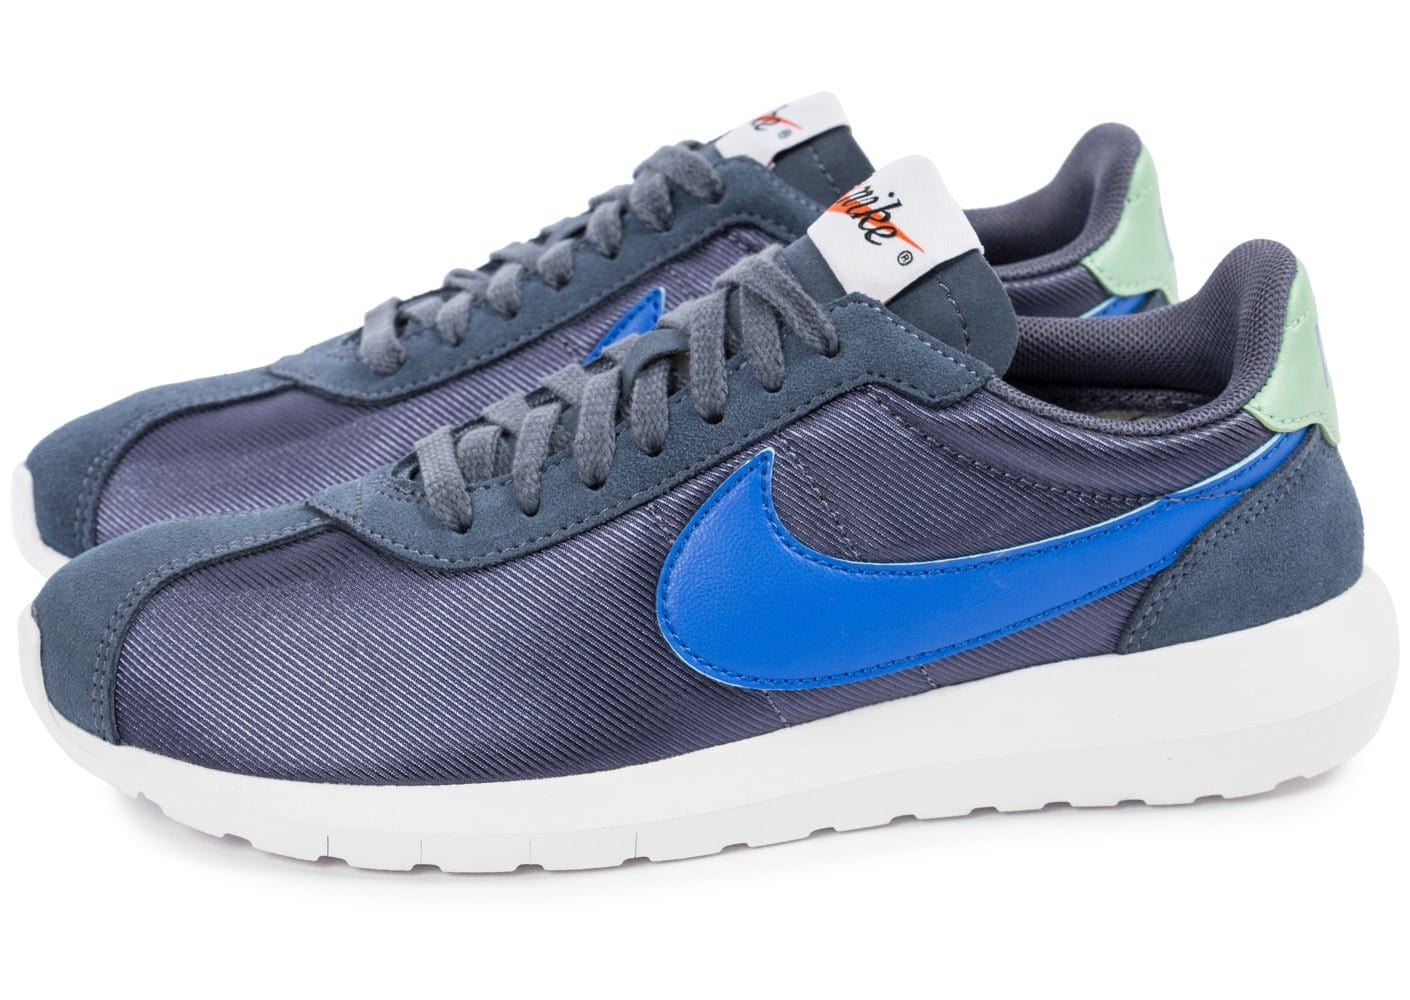 new style 82ded 9c615 ... Chaussures Nike Roshe LD-1000 W bleue vue dessous ...